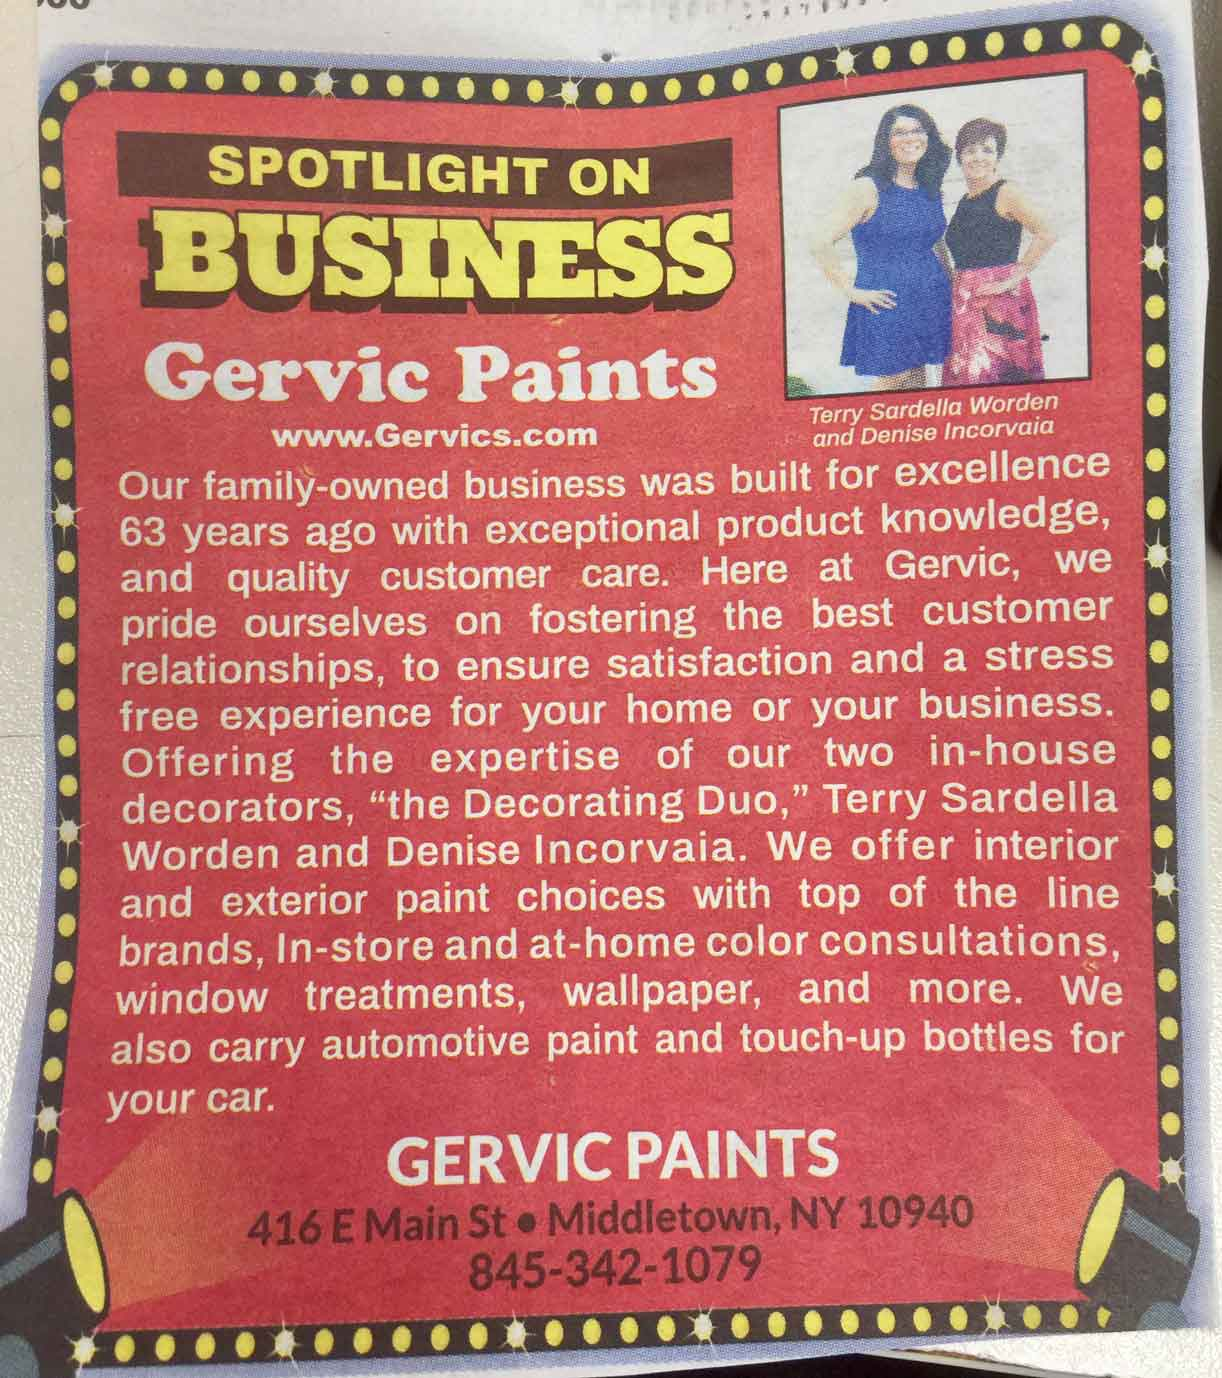 Meet the Experts | Gervic Paints & Decorating Center